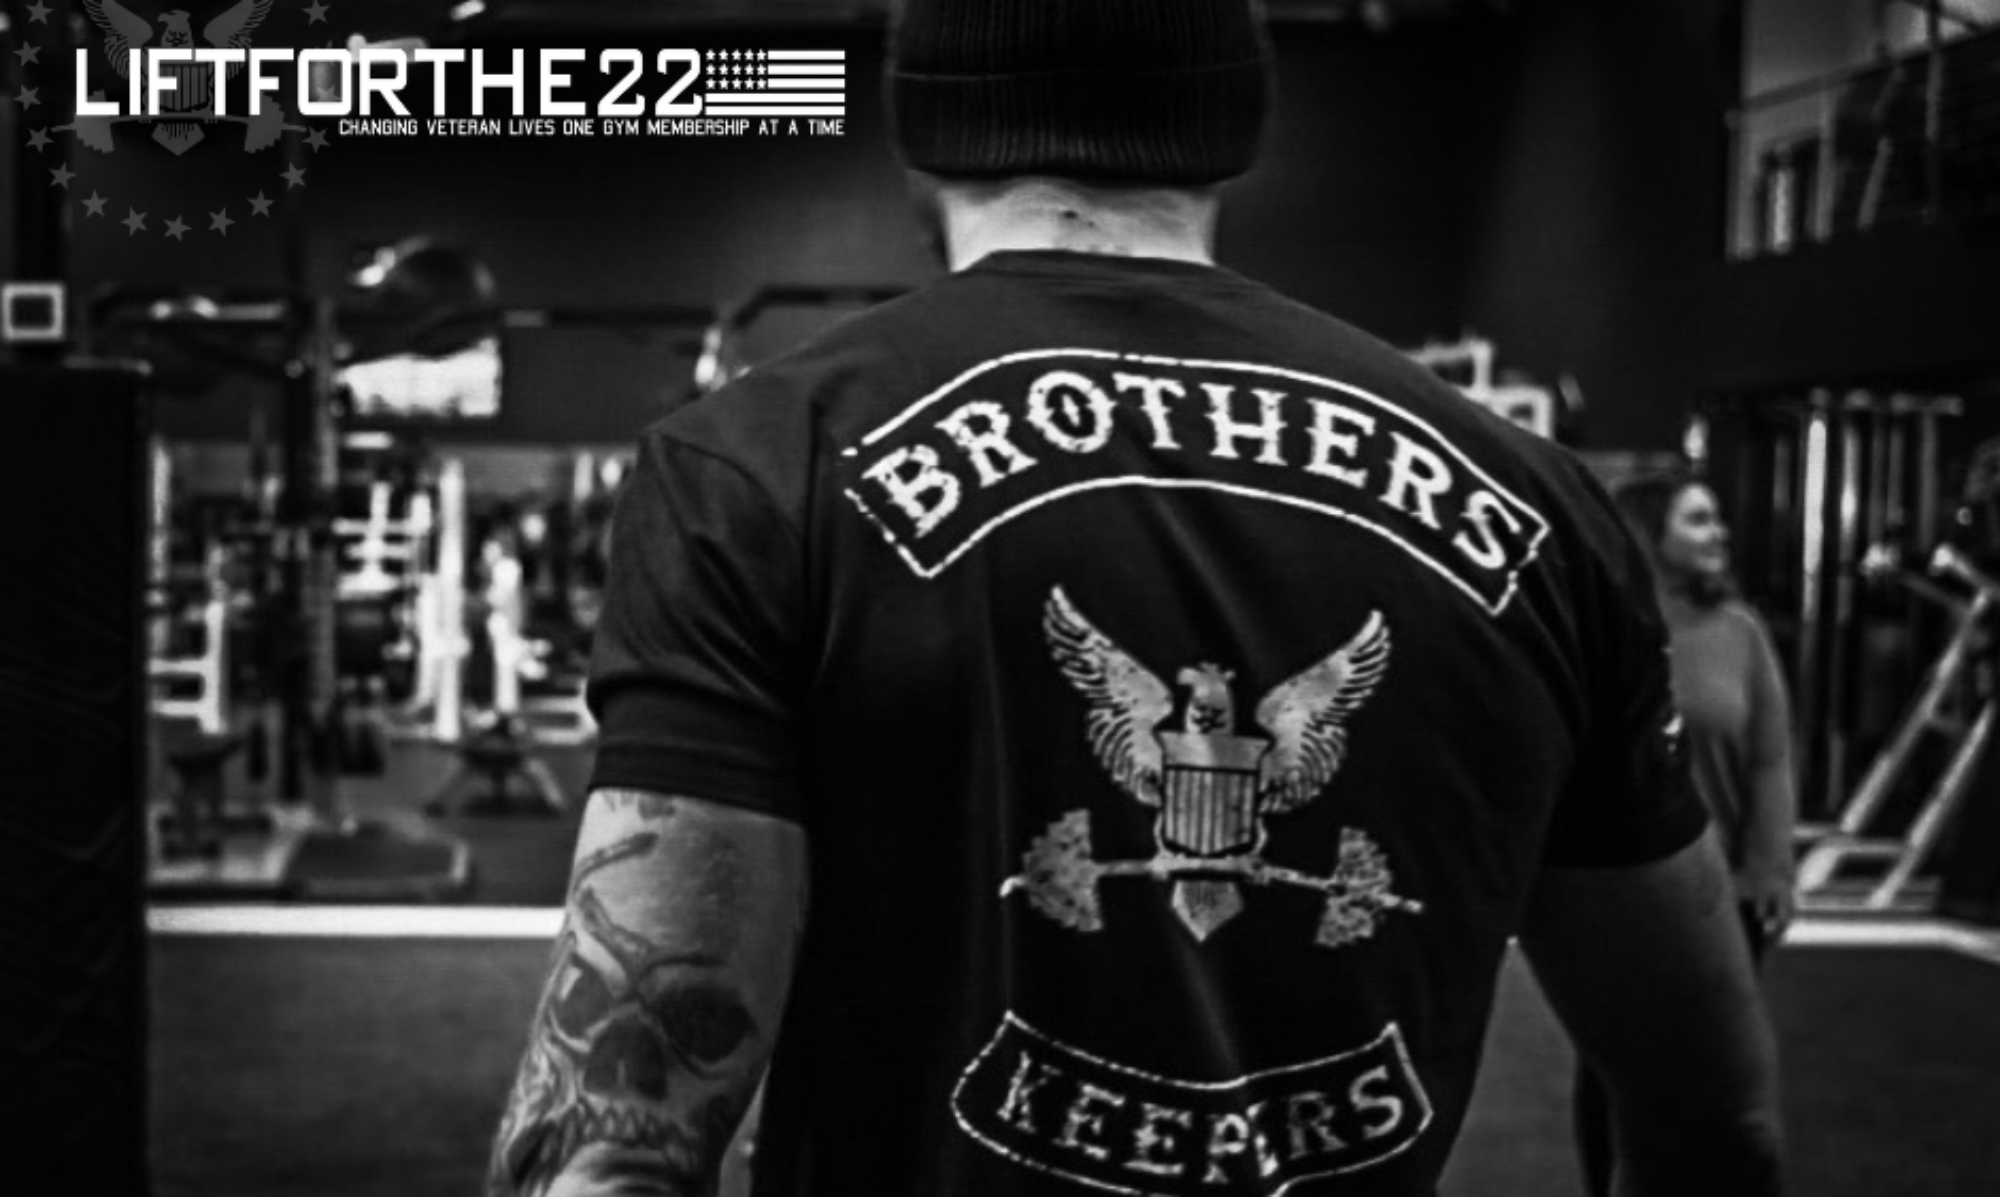 Lift For The 22